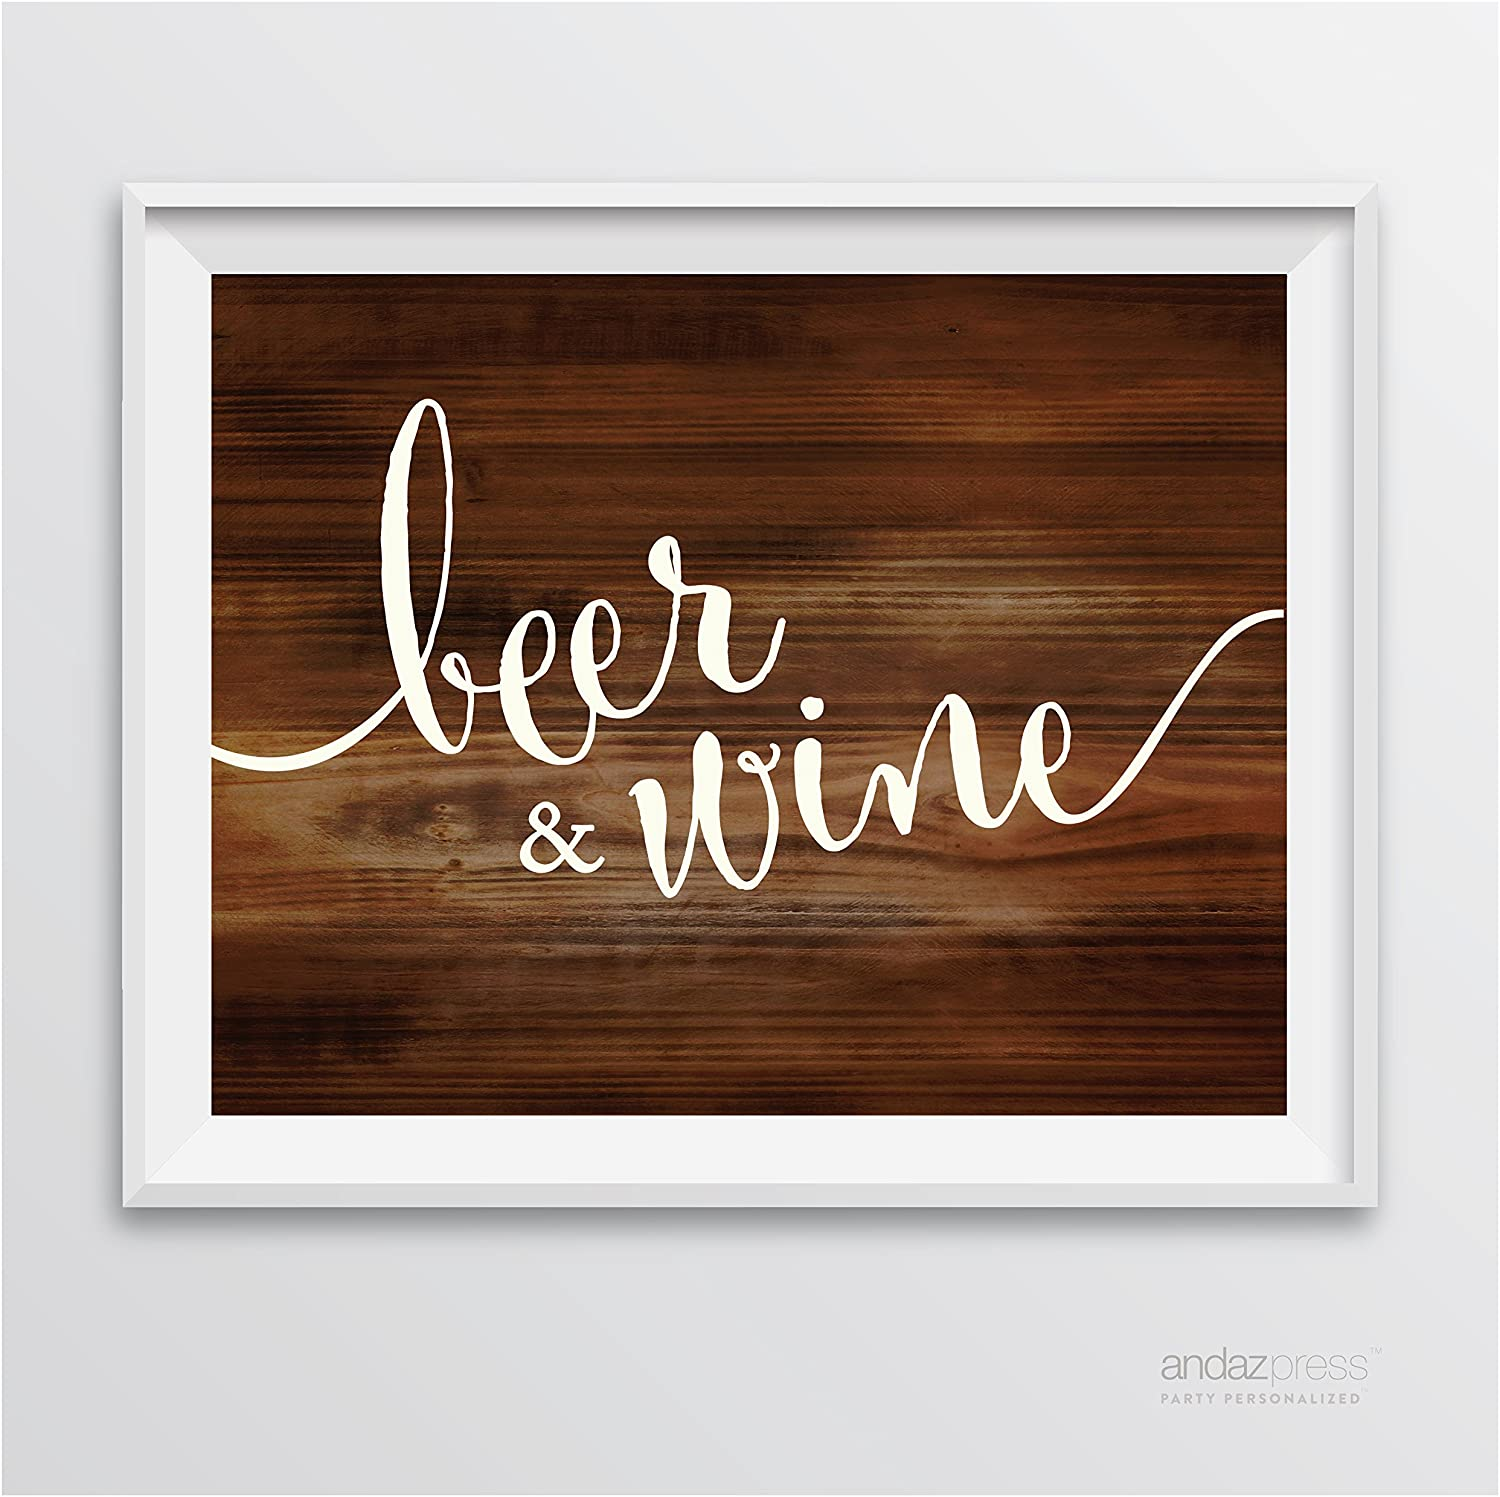 Andaz Press Wedding Party Signs, Rustic Wood Print, 8.5-inch x 11-inch, Beer & Wine Bar Sign, 1-Pack, Unframed